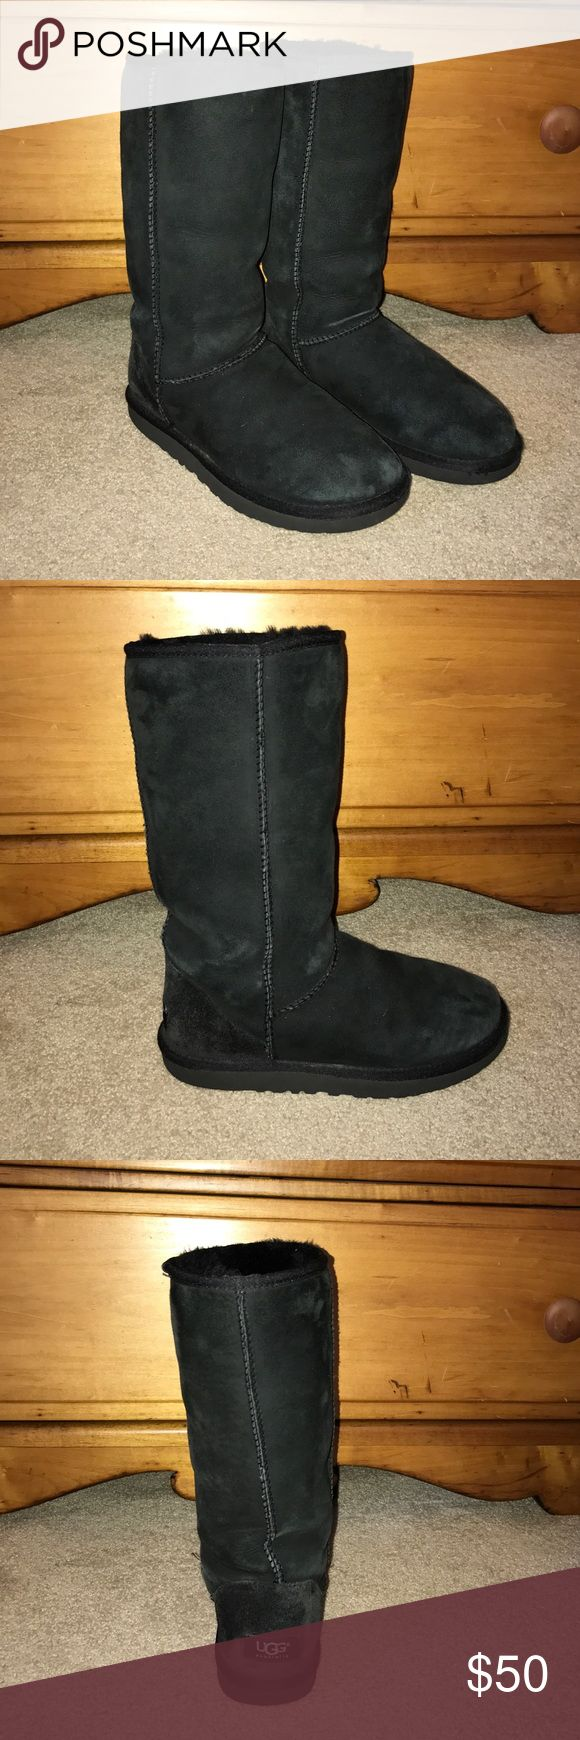 Black Tall UGG Boots Women's black tall UGG boots UGG Shoes Winter & Rain Boots